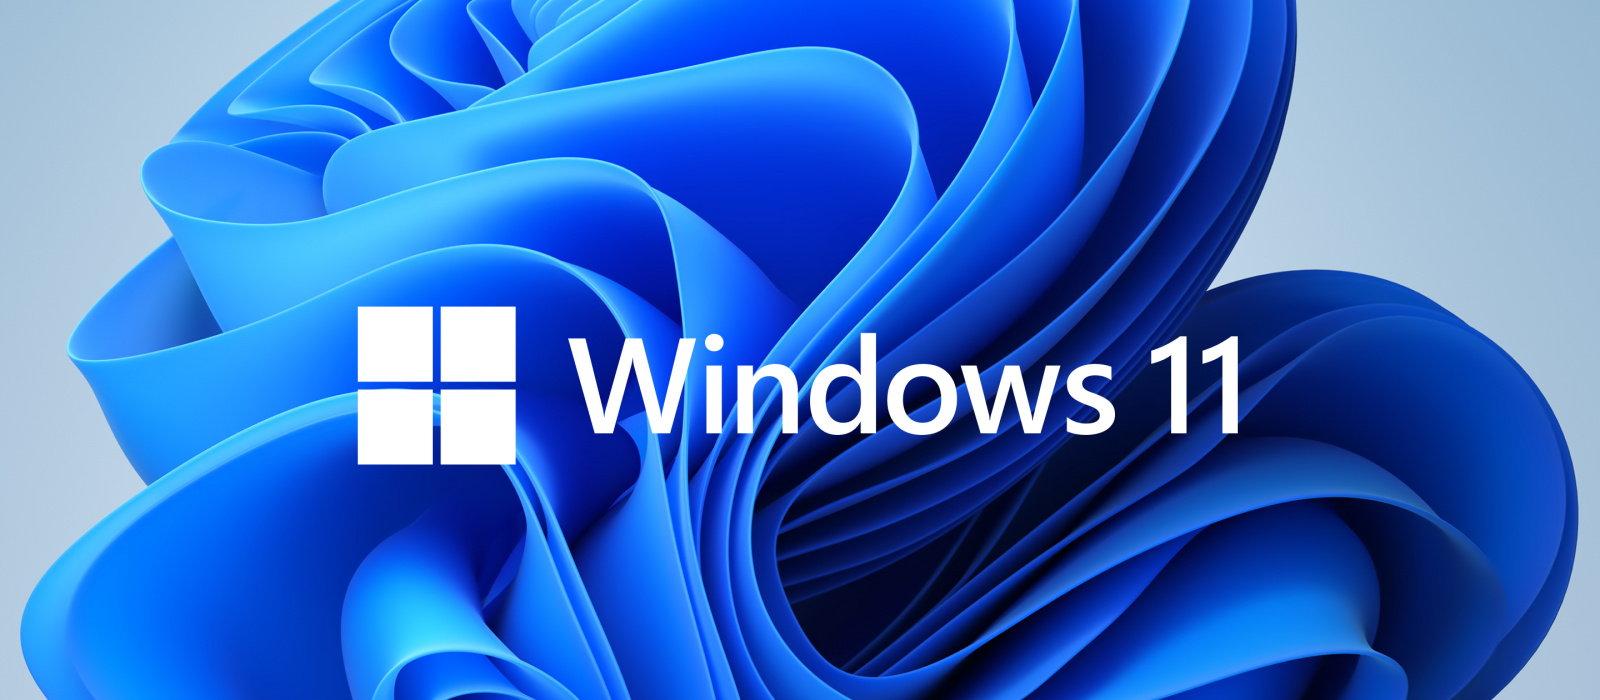 Supported processors for Windows 11. List of processors from intel and AMD on which the new operating system will run